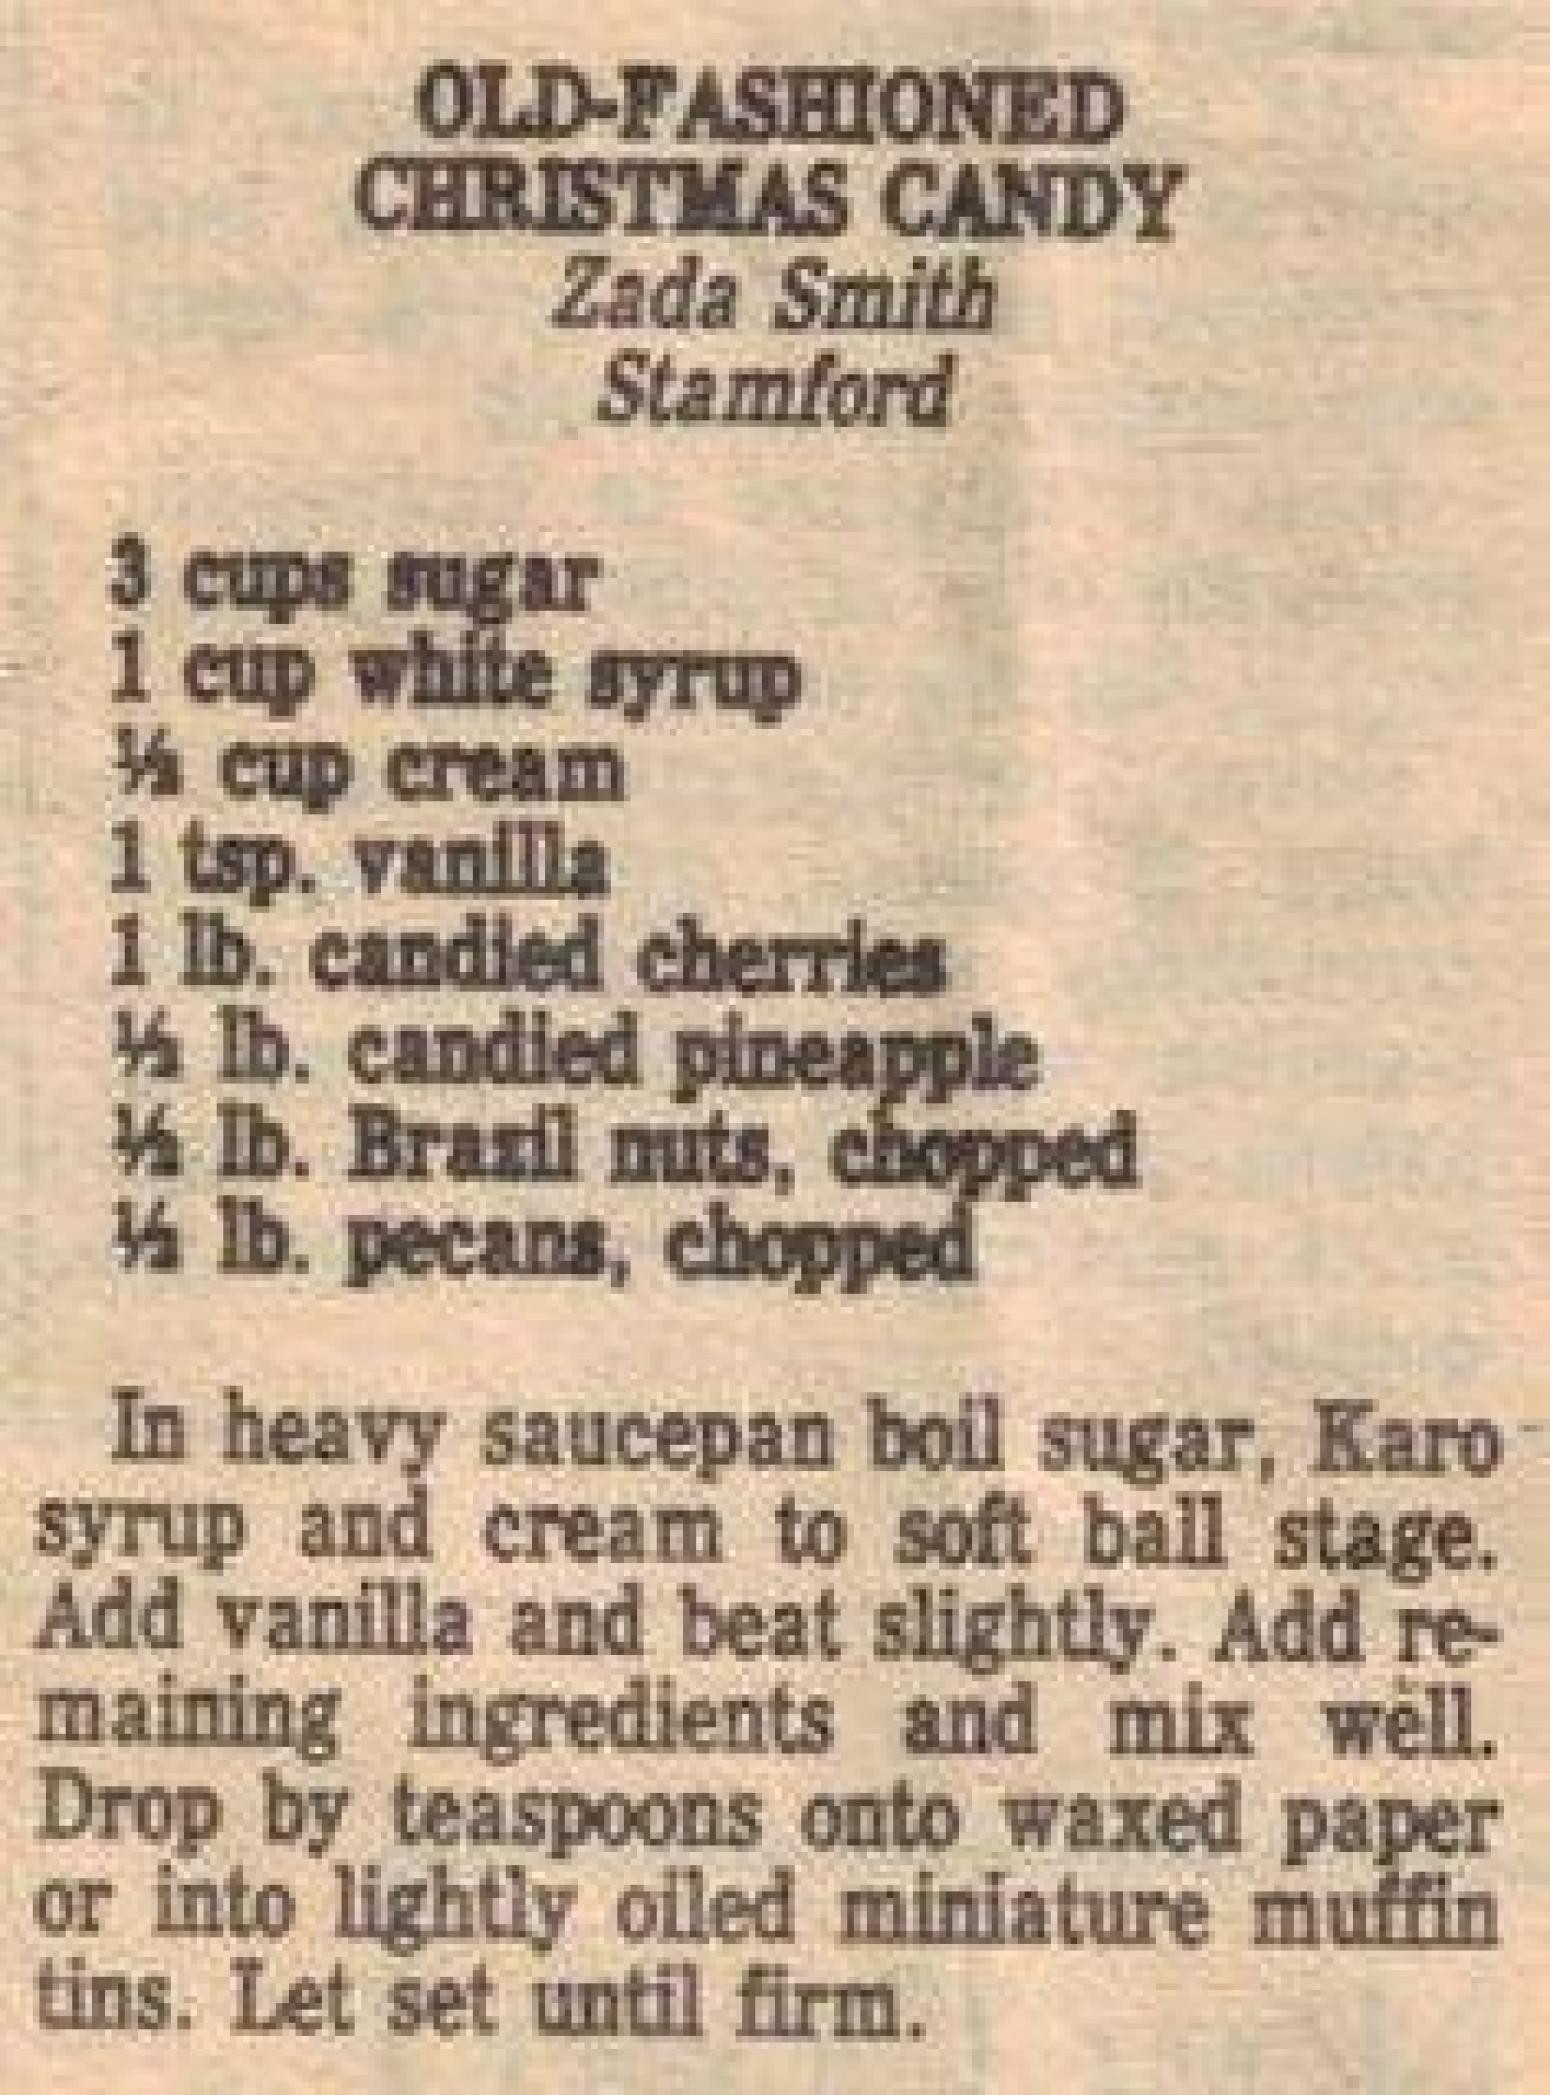 Old Fashioned Christmas Candy Recipes  Old Fashioned Christmas Candy Recipe